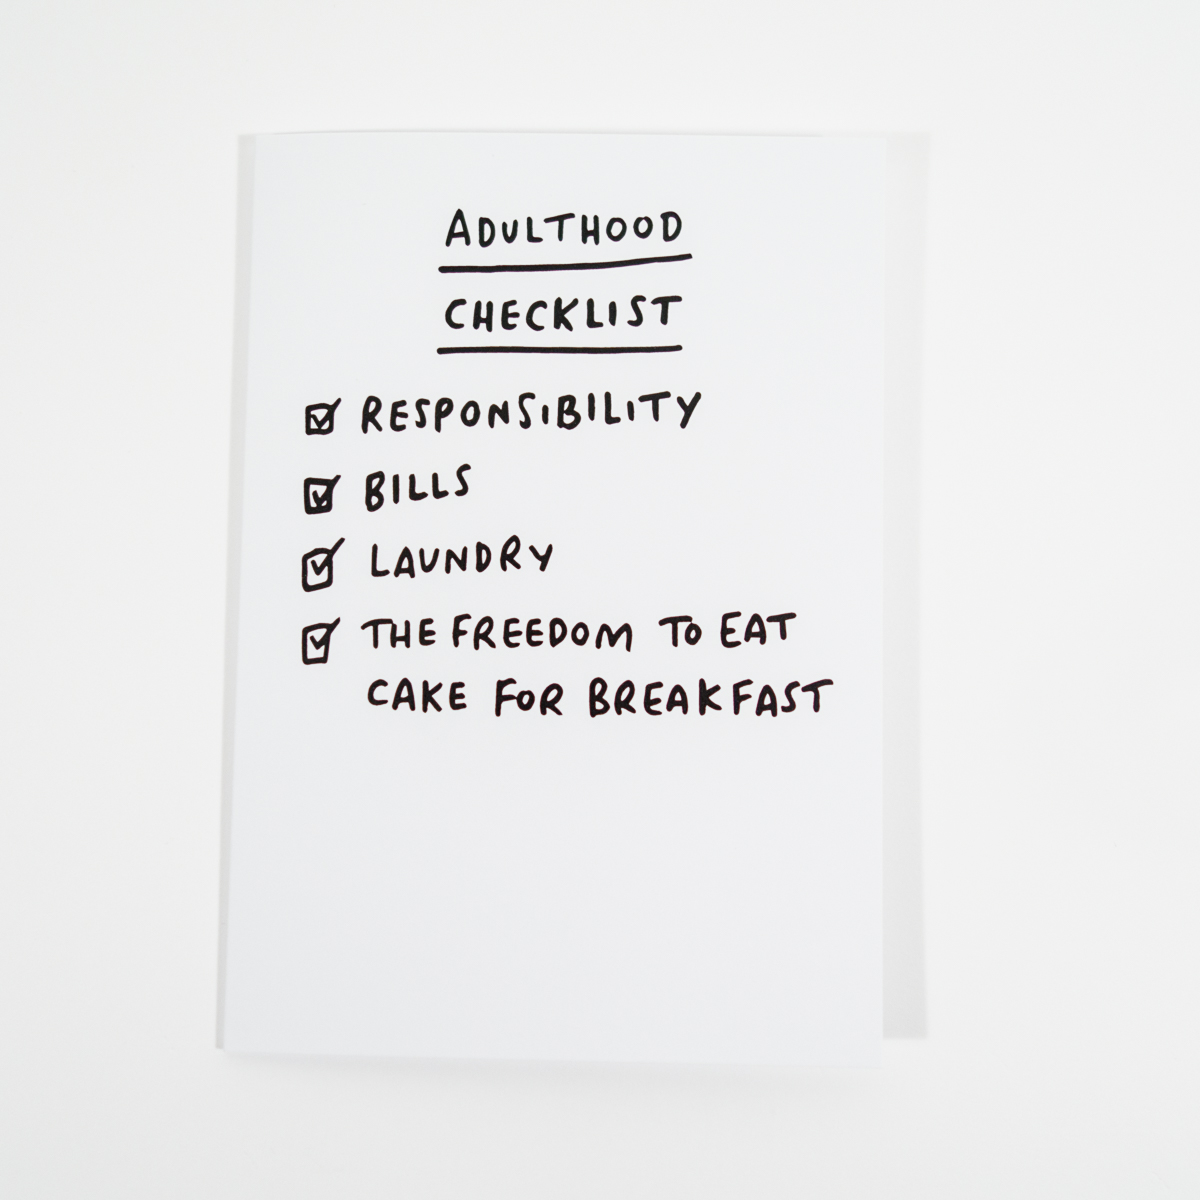 Grußkarte Adulthood Checklist